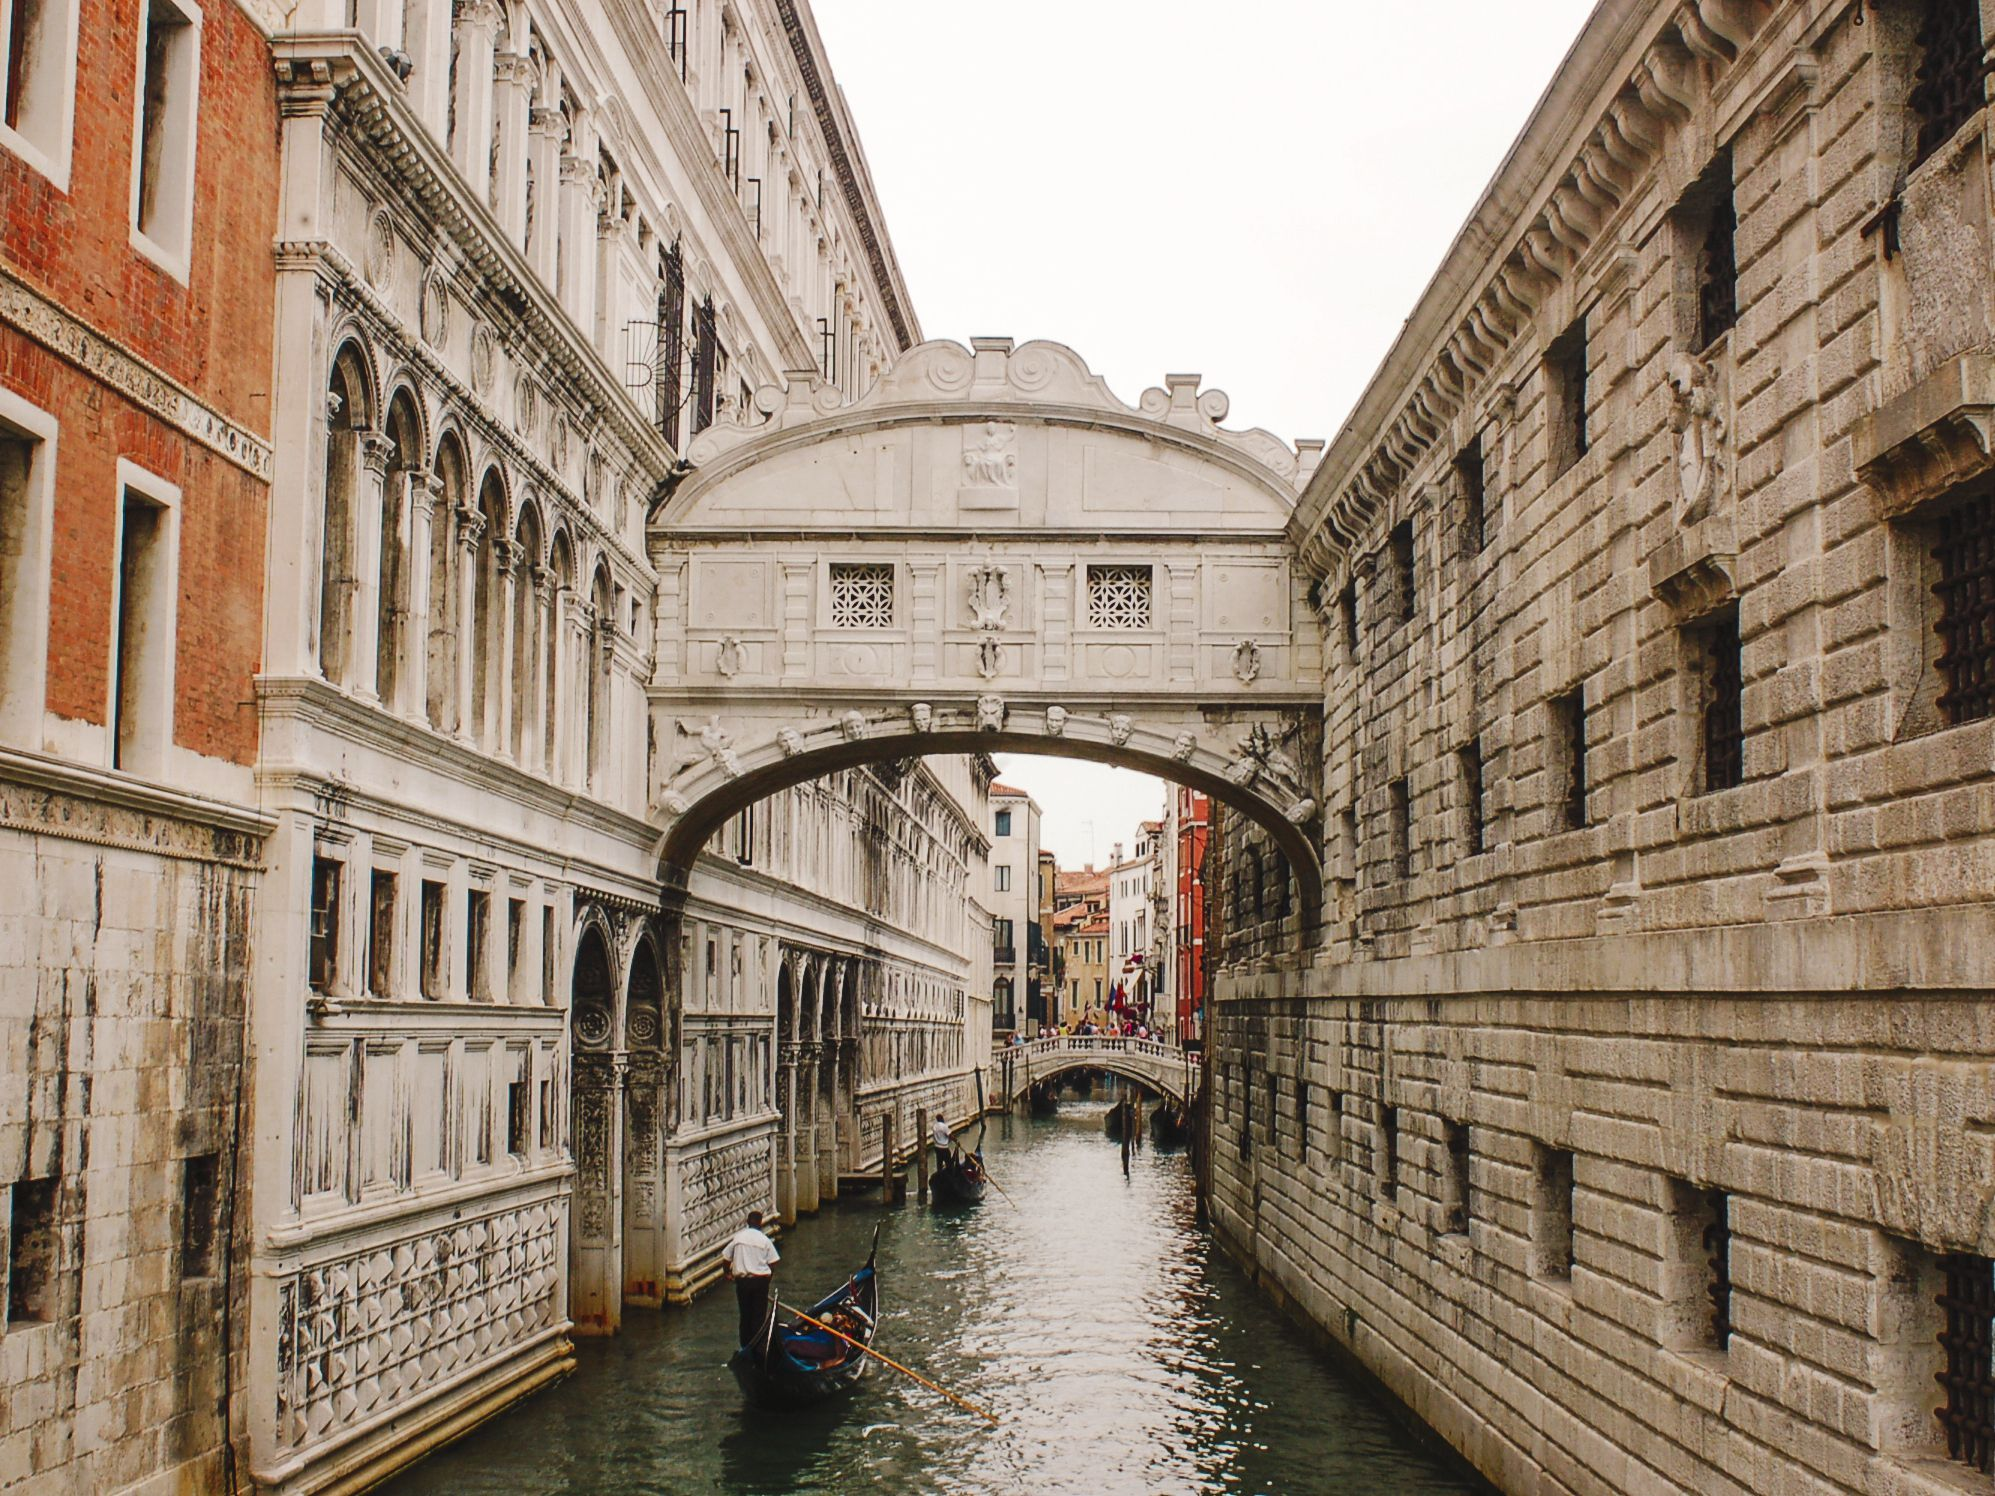 Visit the Bridge of Sighs in Venice, Italy